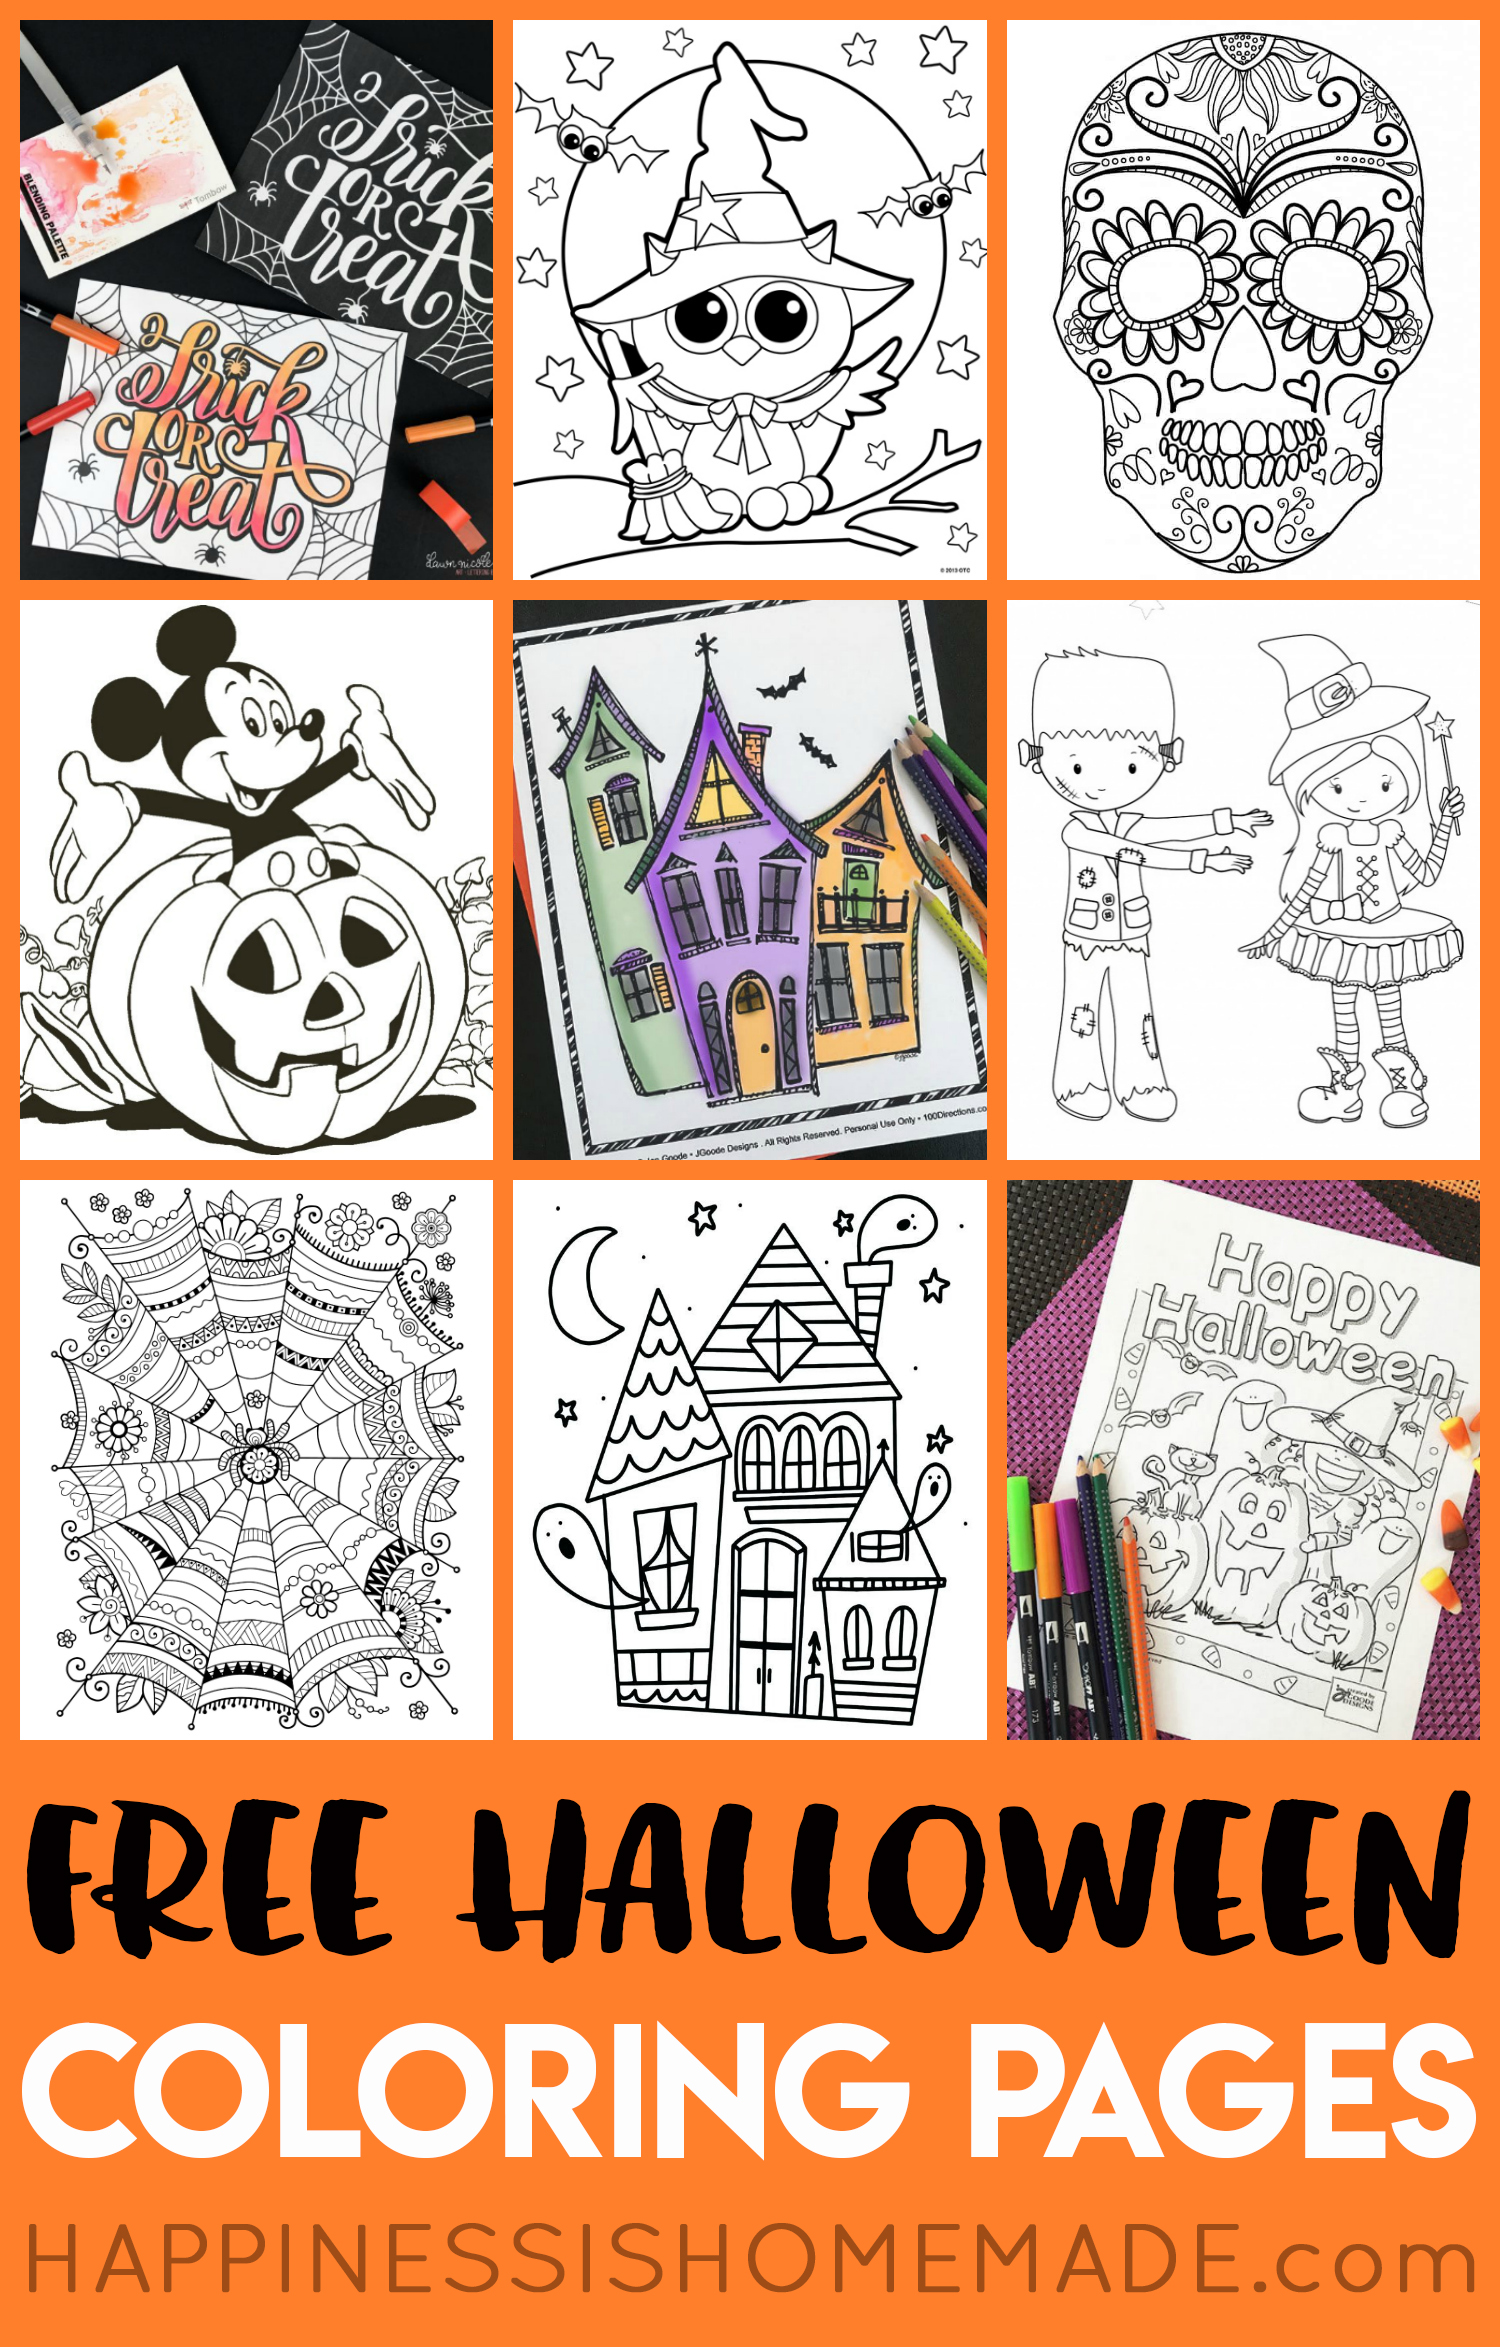 Halloween Mickey Mouse Charlie Brown Haunted Houses Sugar Skulls Bats Witches And More These Printable Coloring Sheets Are Sure To Be A